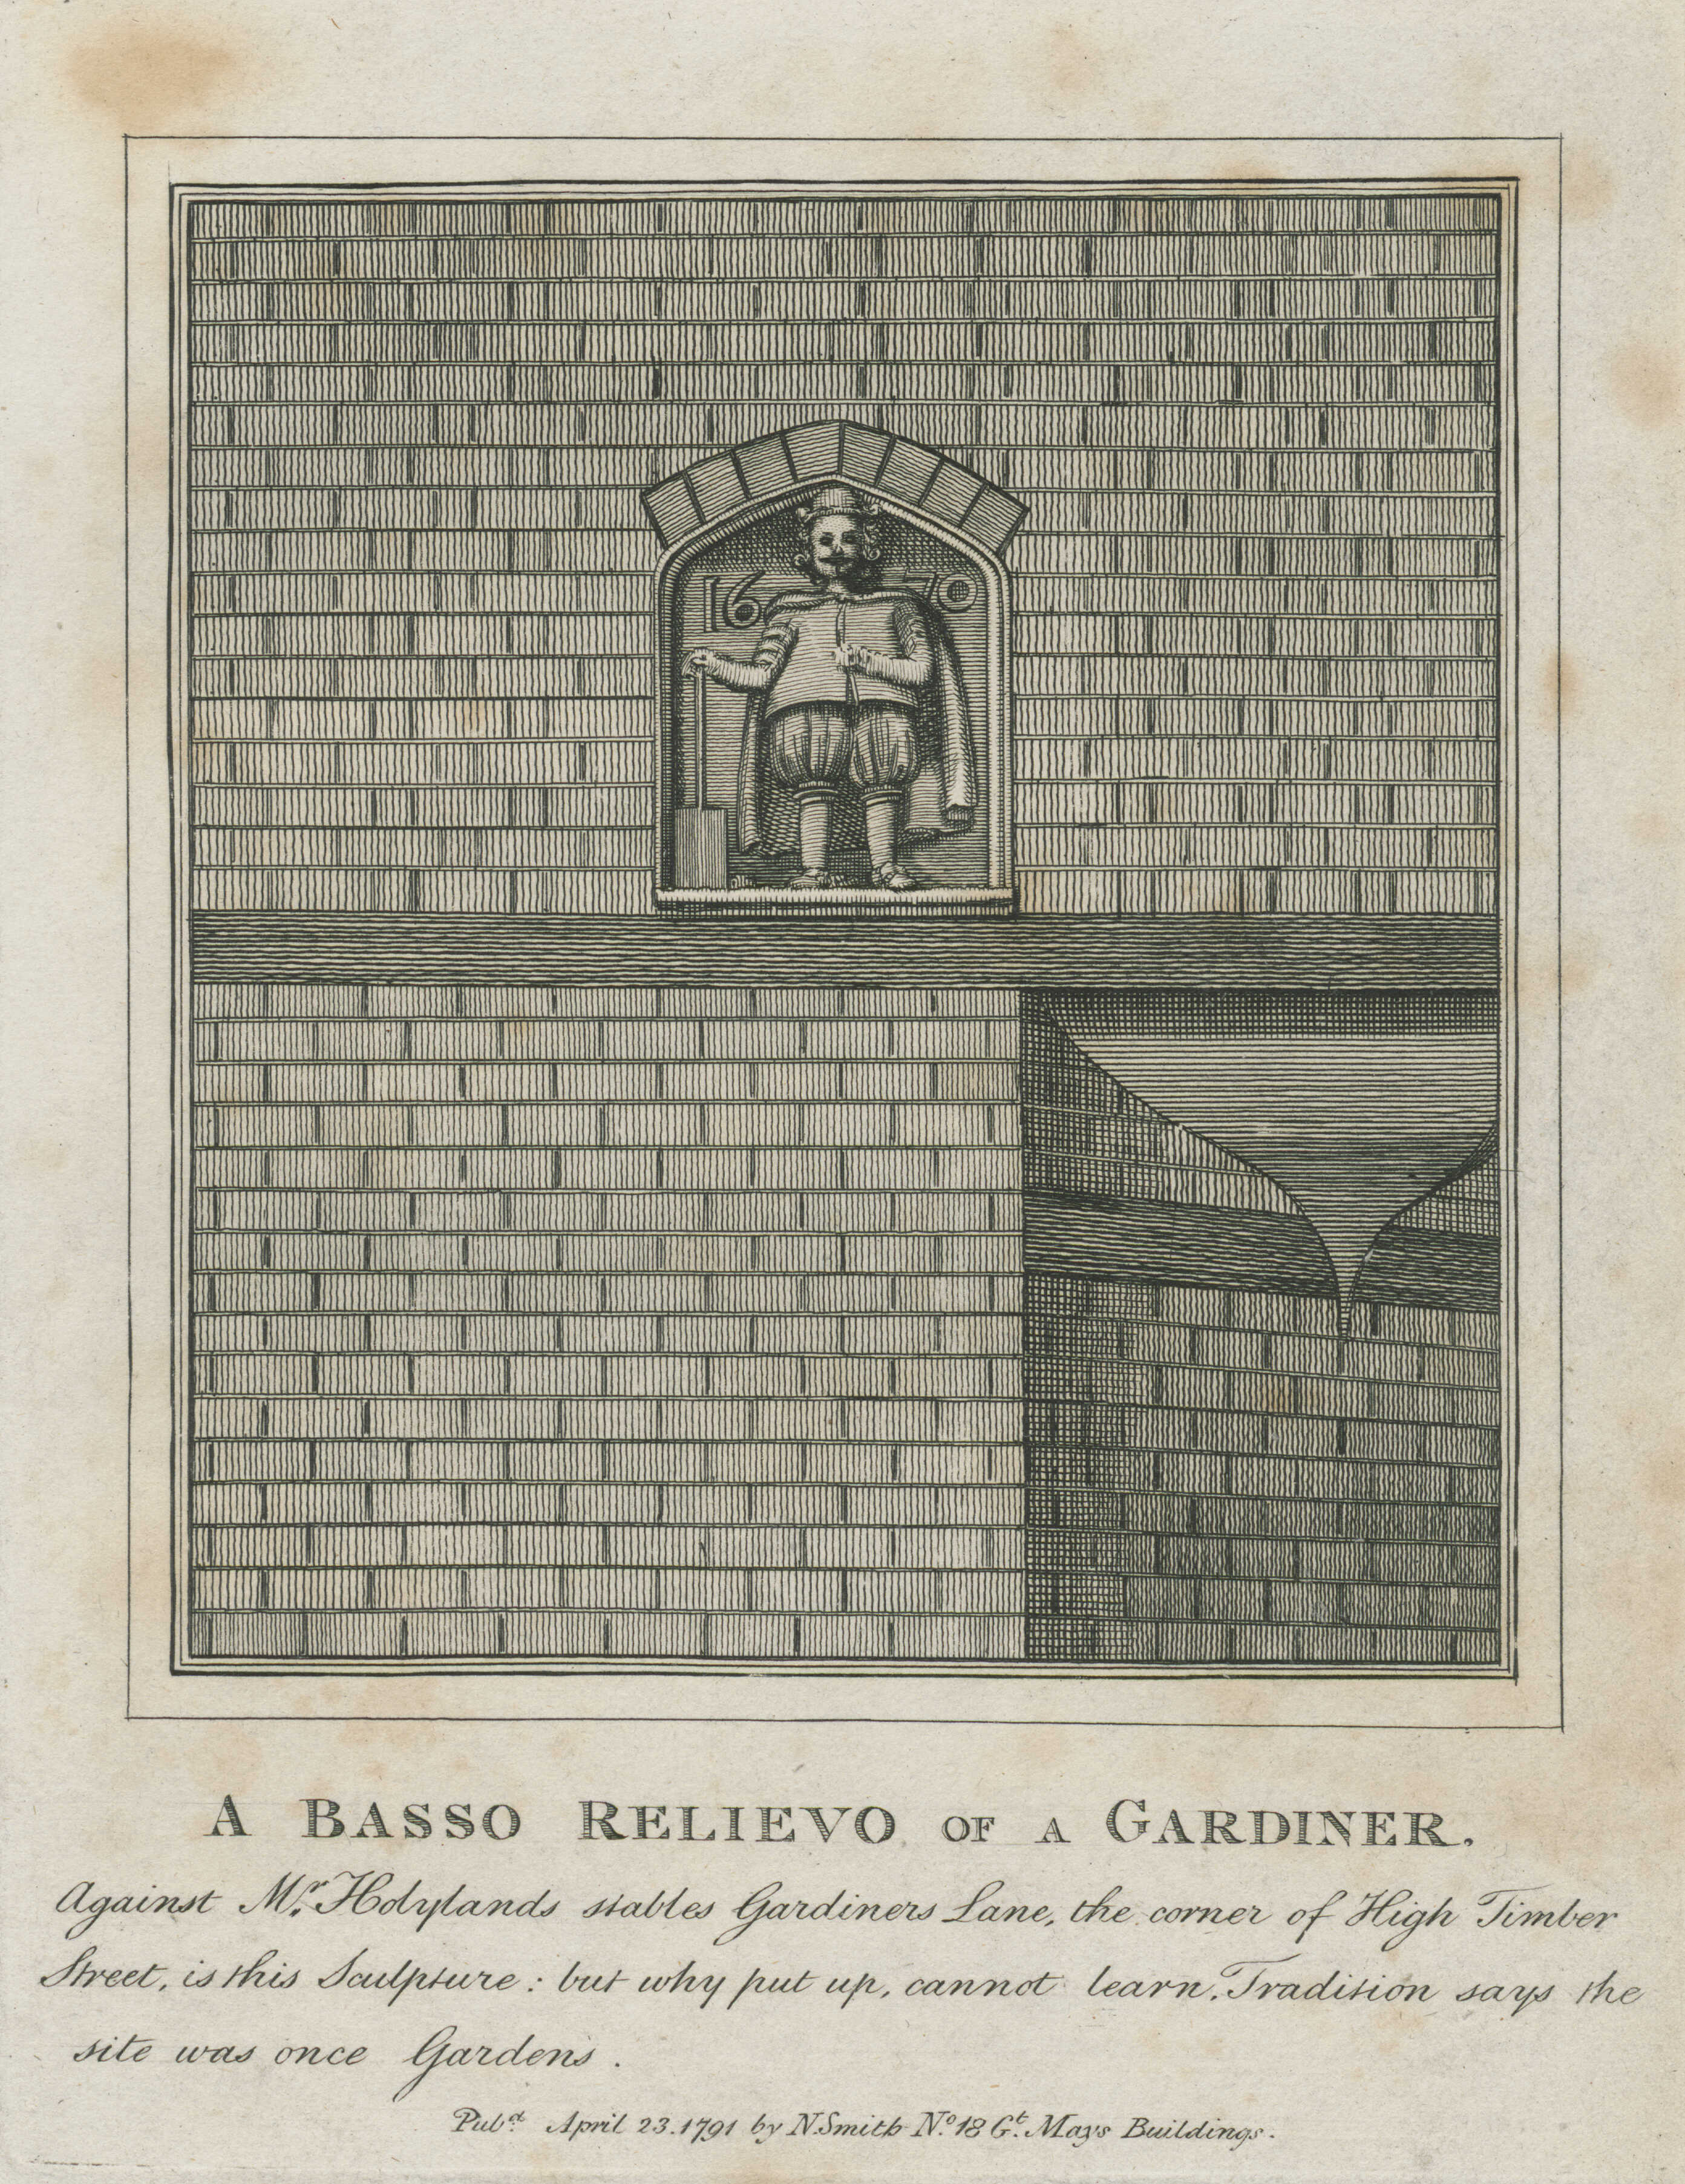 14-a-basso-relievo-of-a-gardiner-mr-hoylands-stables-gardiners-lane